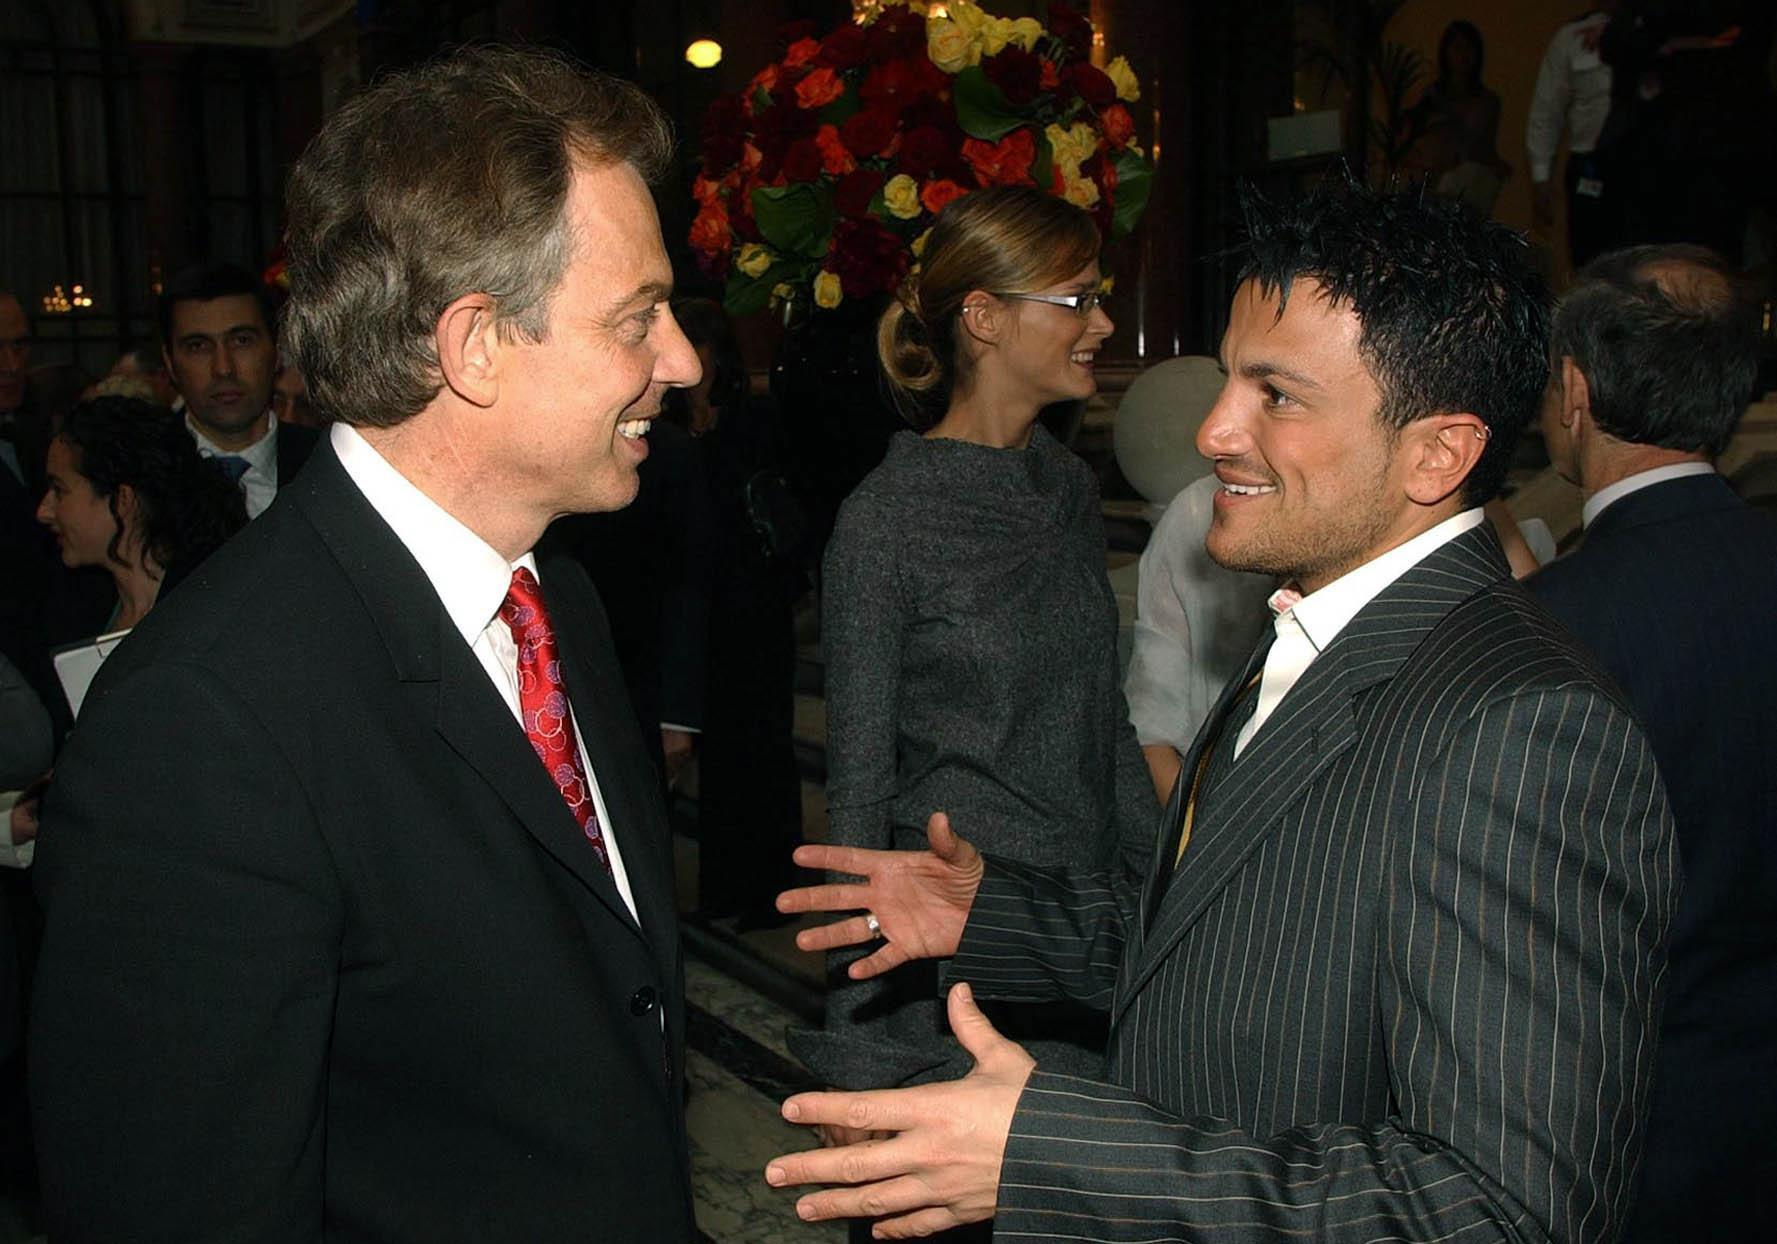 British Prime Minister Tony Blair talks to singer Peter Andre  during the EU enlargement: Unification of Europe - VIP Party, to celebrate the entry of 10 new countries into the European Union, at the Foreign and Commonwealth Office in London.  Where Mr Blair launched the Crossroads for Ideas initiative, a joint project between the Foreign Office and the British Council.   The scheme will bring some of the most talented young professionals from Central Europe - working in television, fashion, design, architecture, science, the environment and finance - to meet their British counterparts to exchange ideas, experiences and skills.